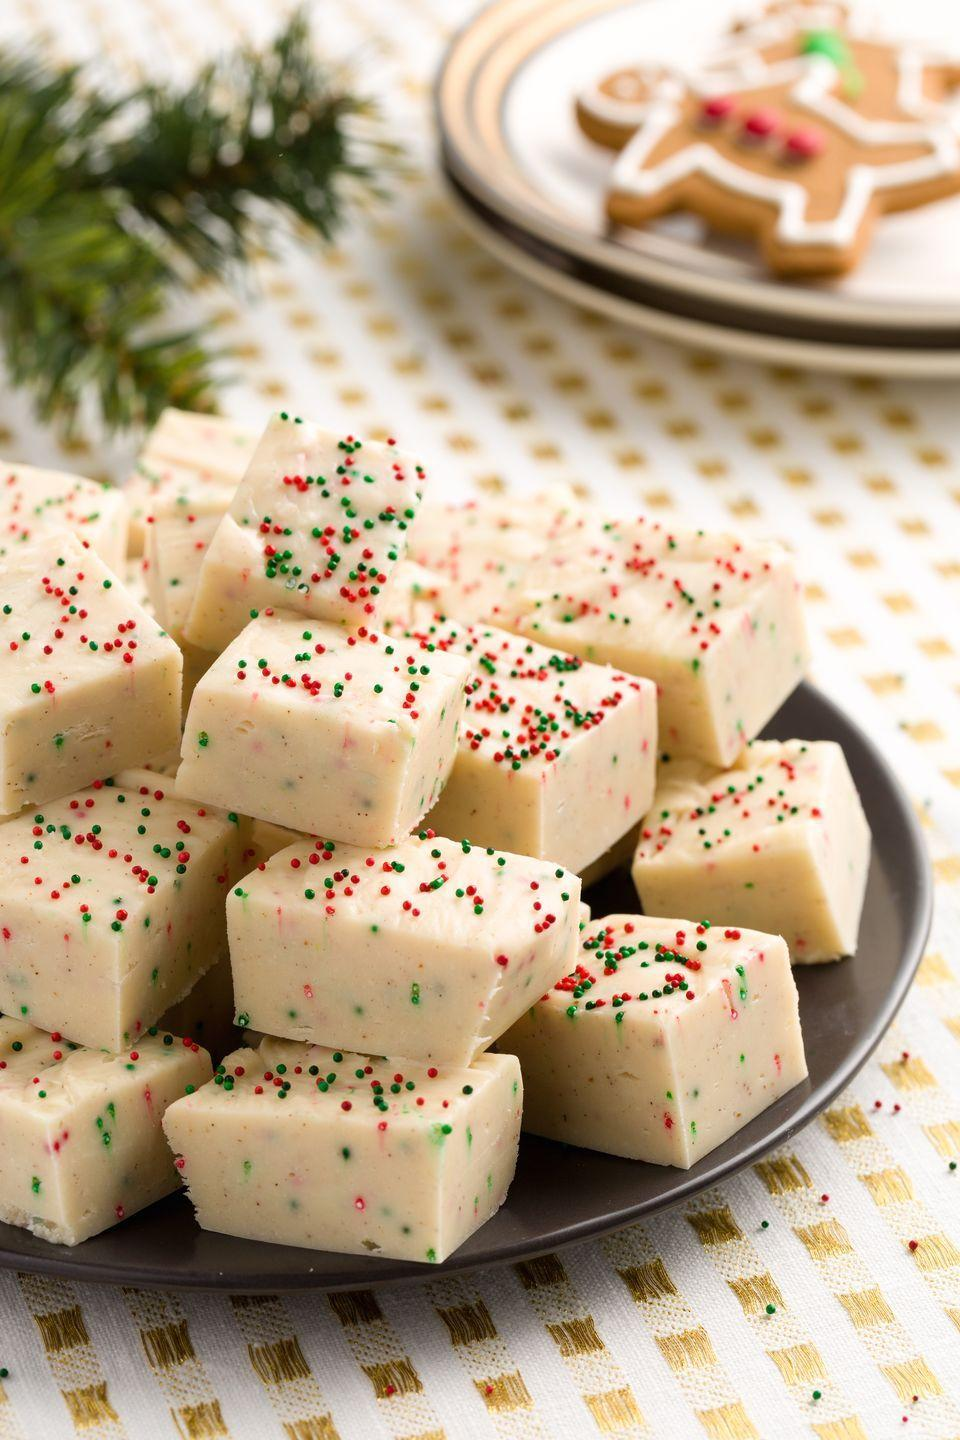 """<p>The sweetest little pieces of fudge you ever did see.</p><p>Get the recipe from <a href=""""https://www.delish.com/cooking/recipe-ideas/recipes/a45064/gingerbread-fudge-recipe/"""" rel=""""nofollow noopener"""" target=""""_blank"""" data-ylk=""""slk:Delish"""" class=""""link rapid-noclick-resp"""">Delish</a>.</p>"""